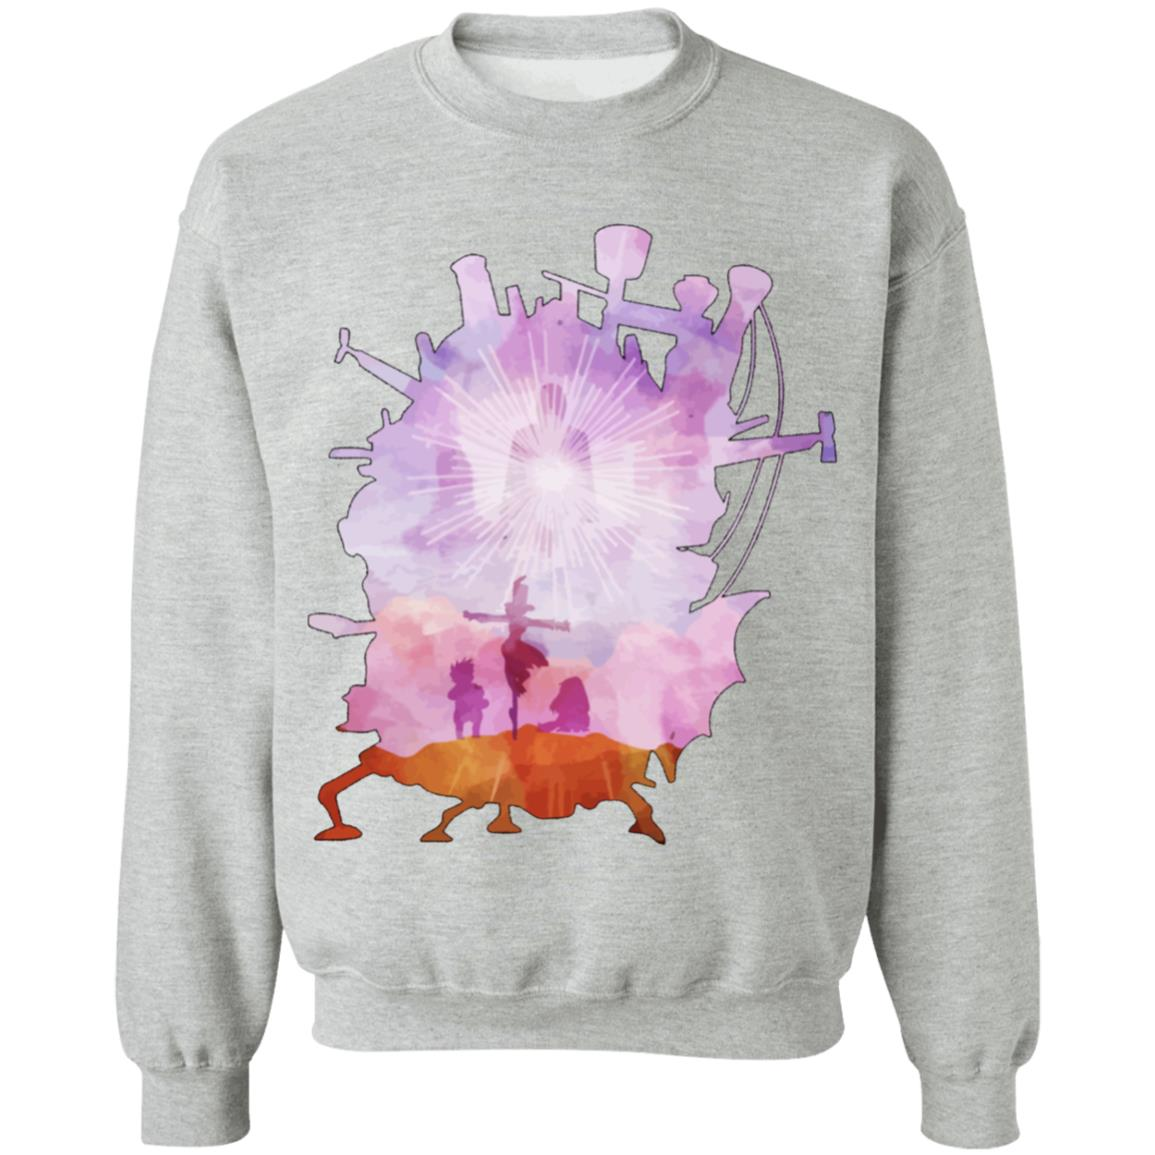 Howl's Moving Castle – Howl's Horizon Sweatshirt